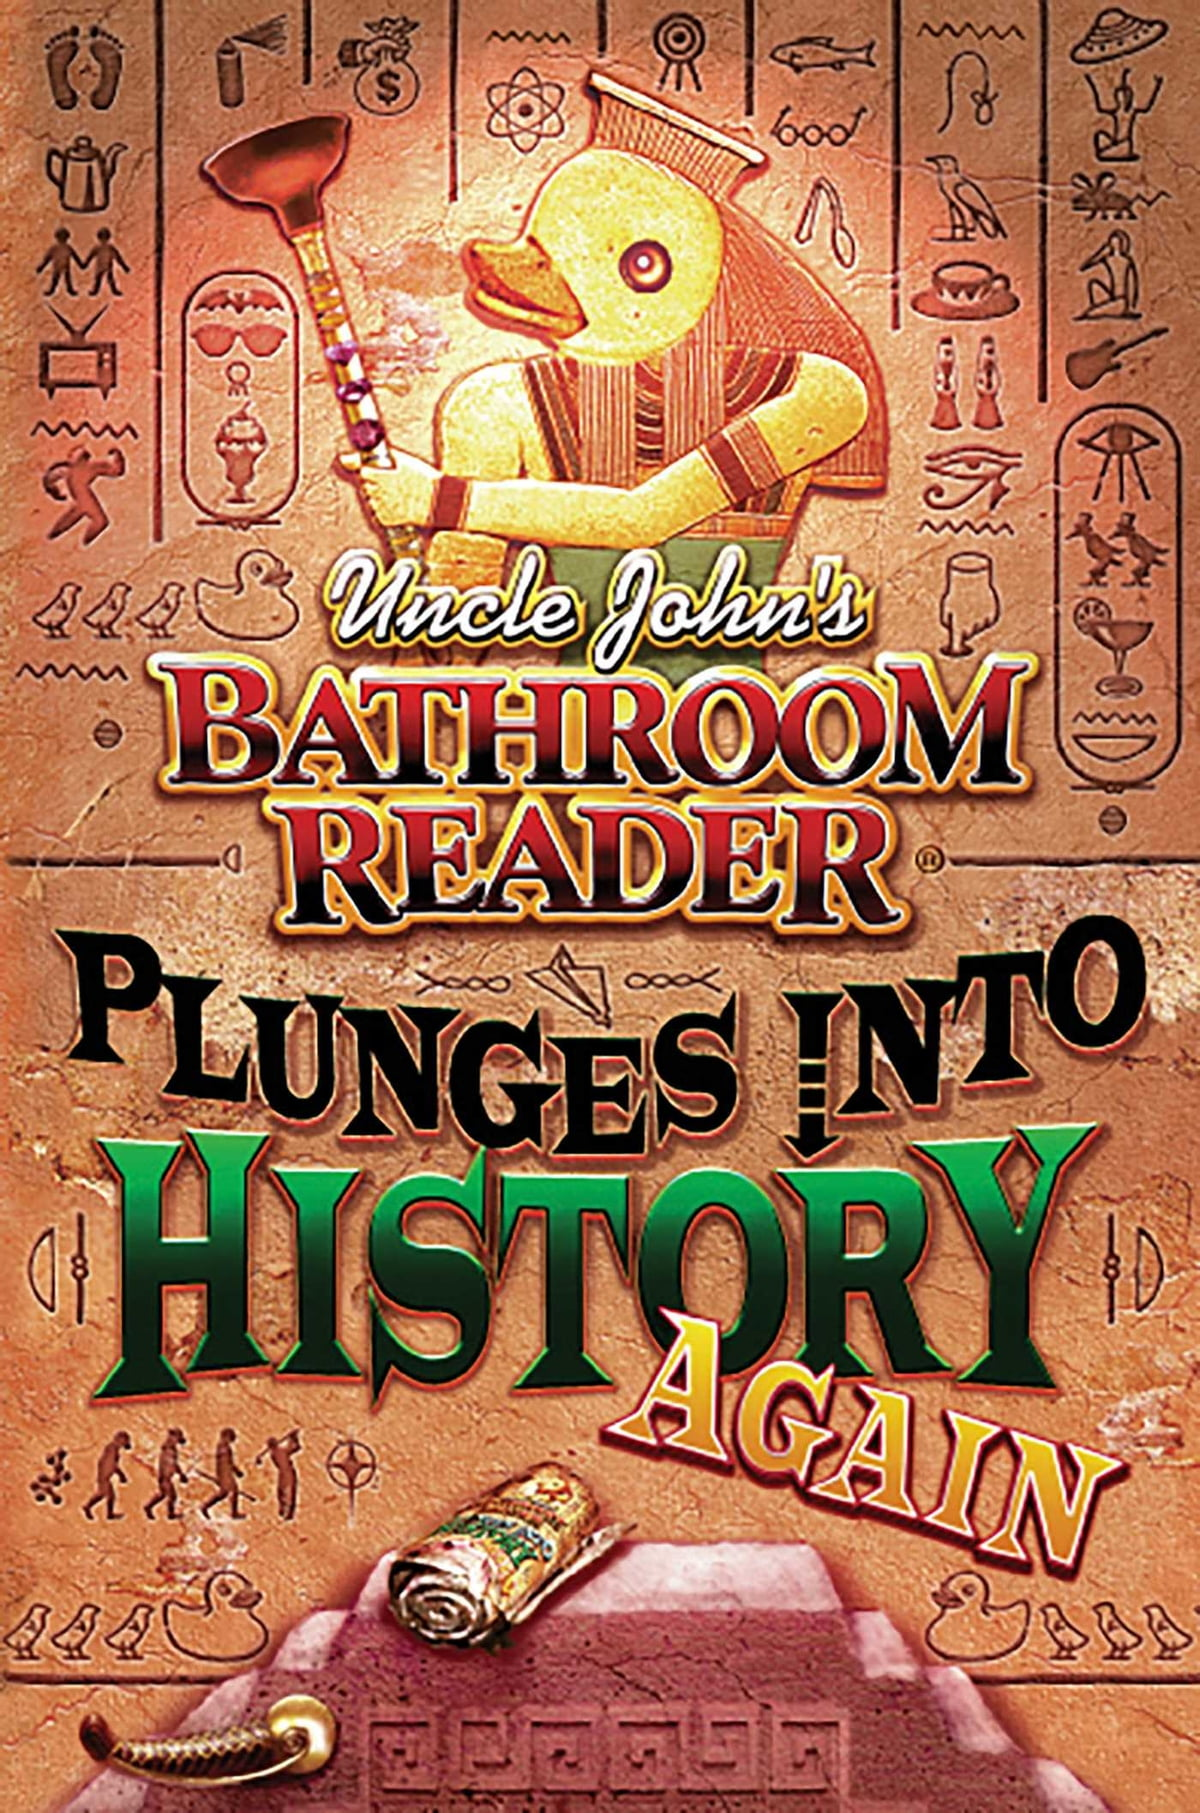 Uncle John's Bathroom Reader Plunges into History Again eBook by Bathroom  Readers' Hysterical Society - 9781607106173 | Rakuten Kobo